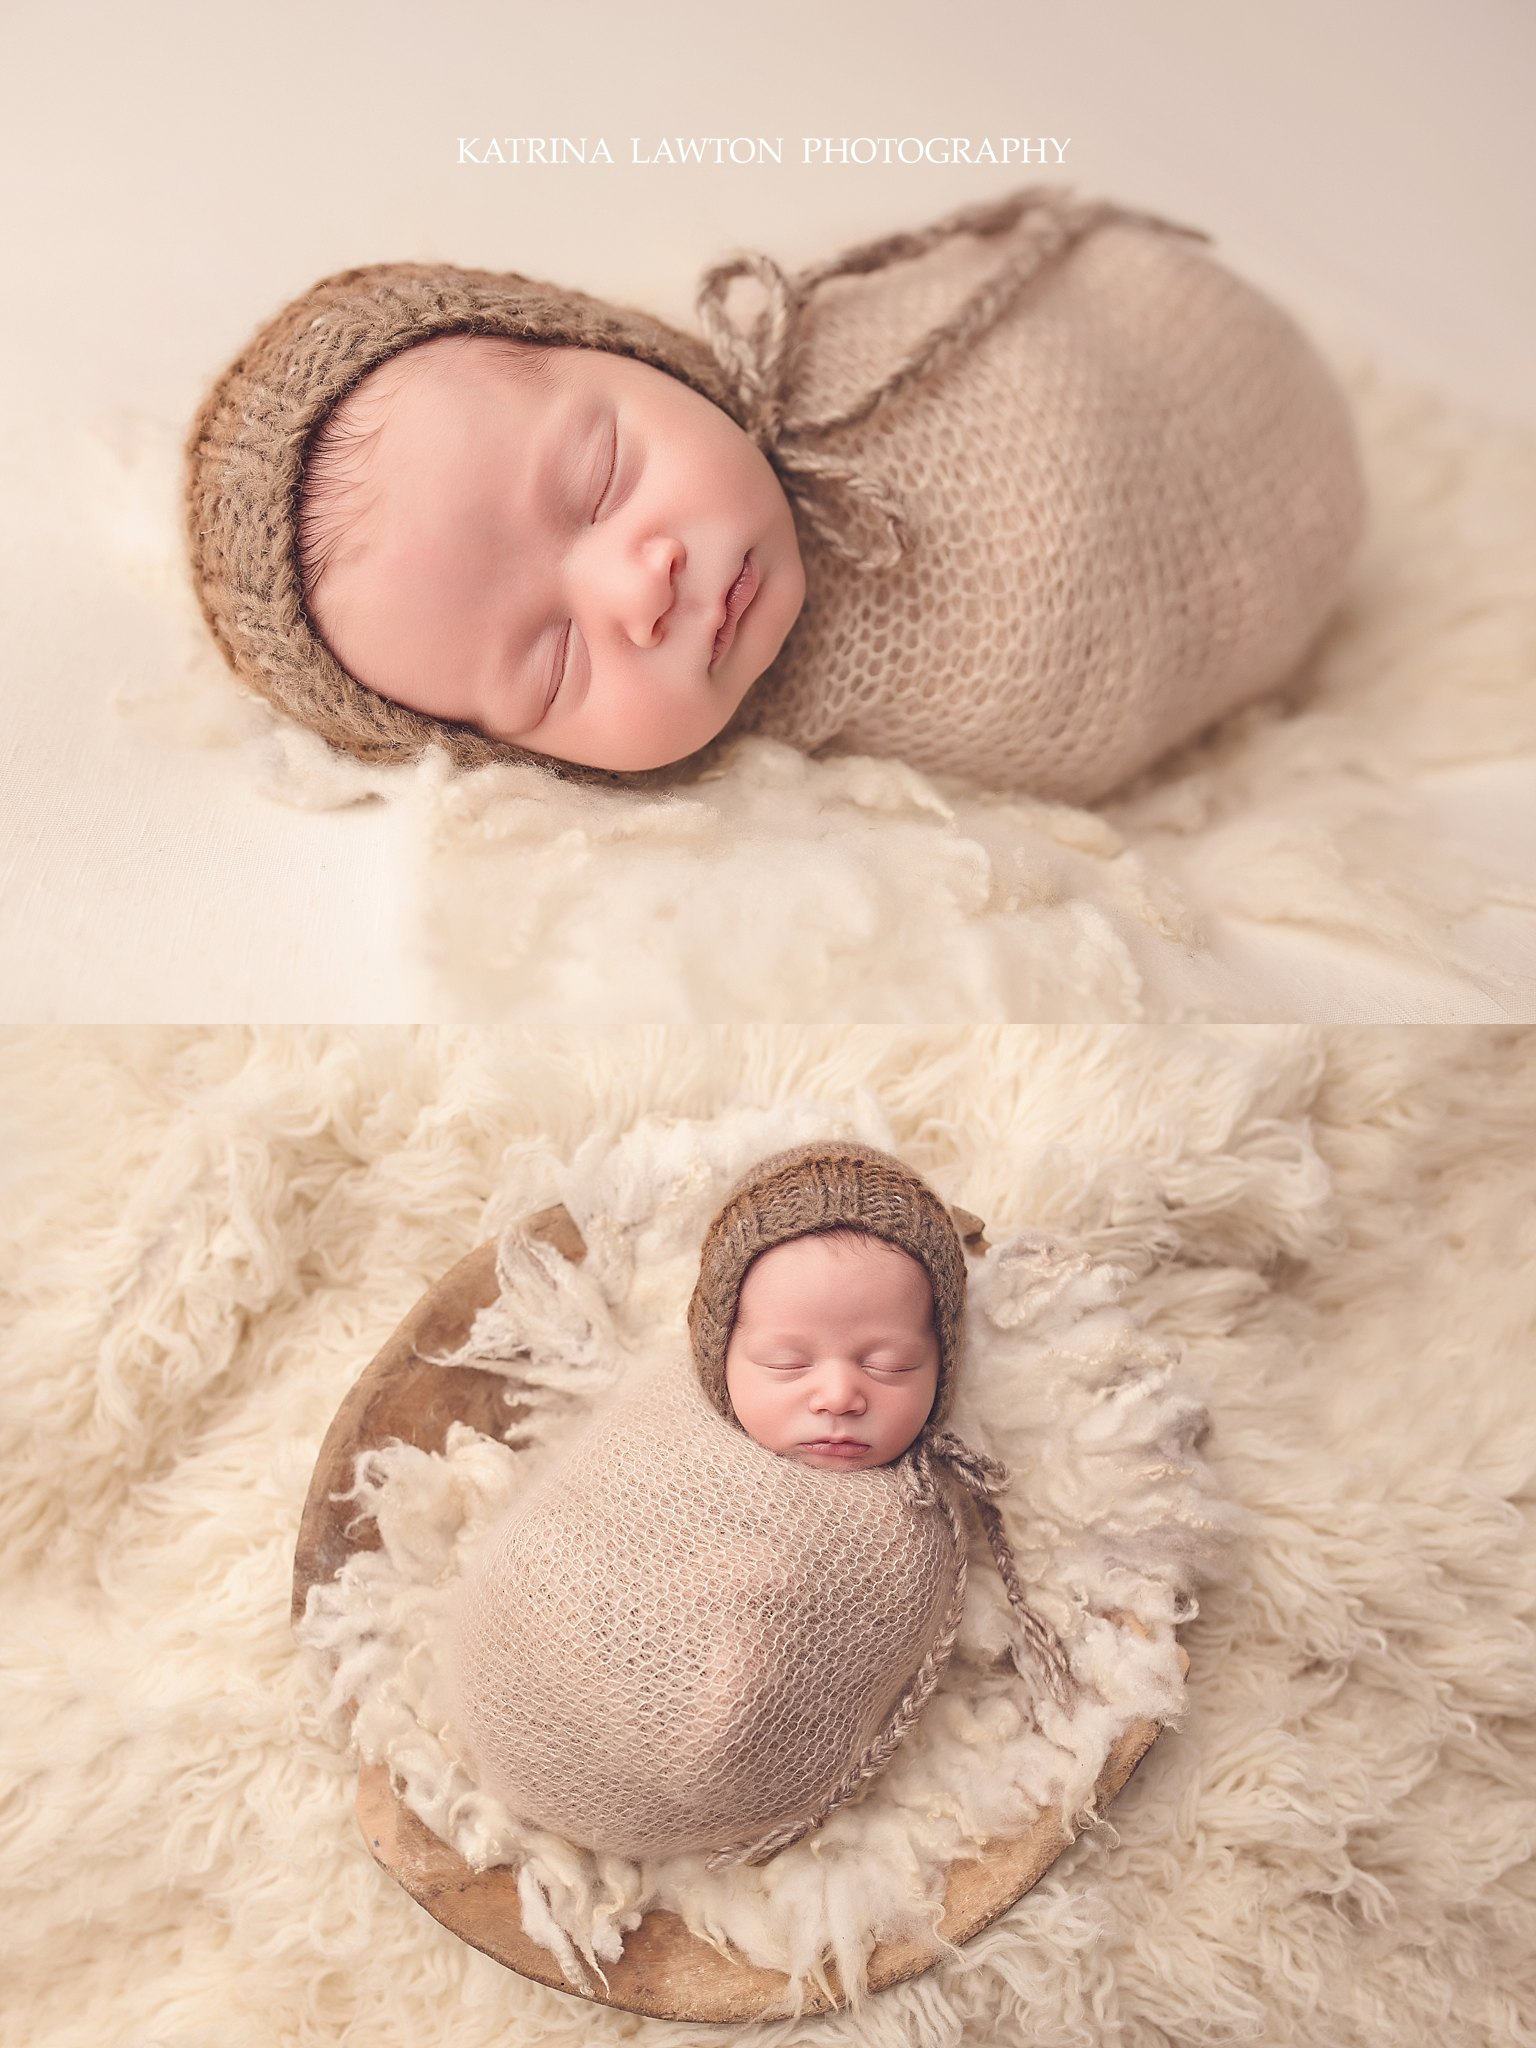 Massachusetts Newborn Session | Katrina Lawton Photography